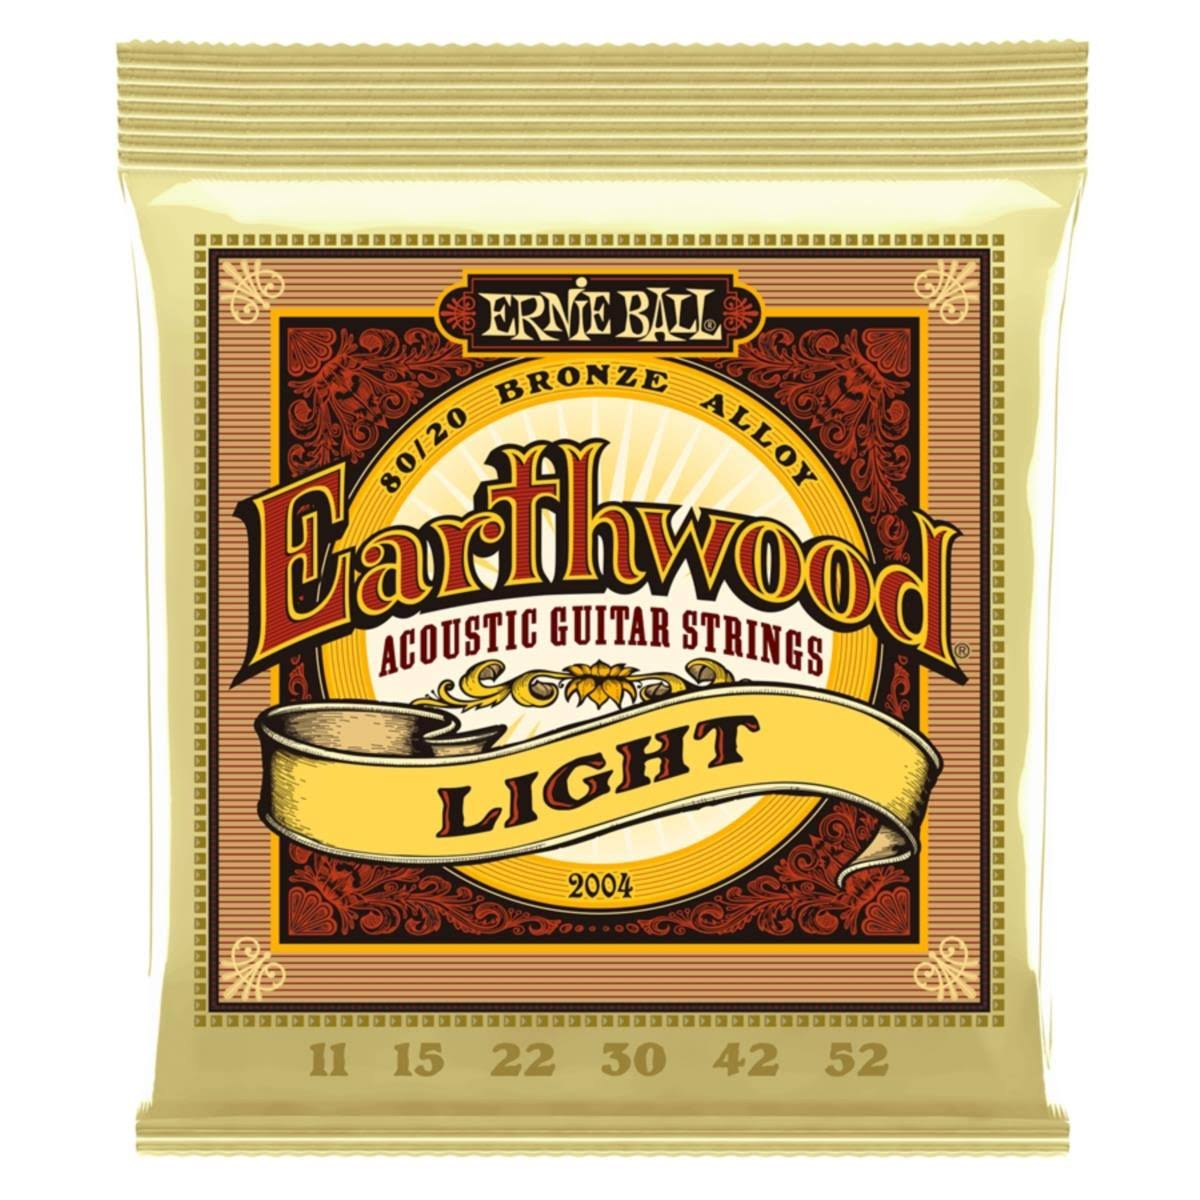 Ernie Ball Earthwood Acoustic Guitar Strings - Light